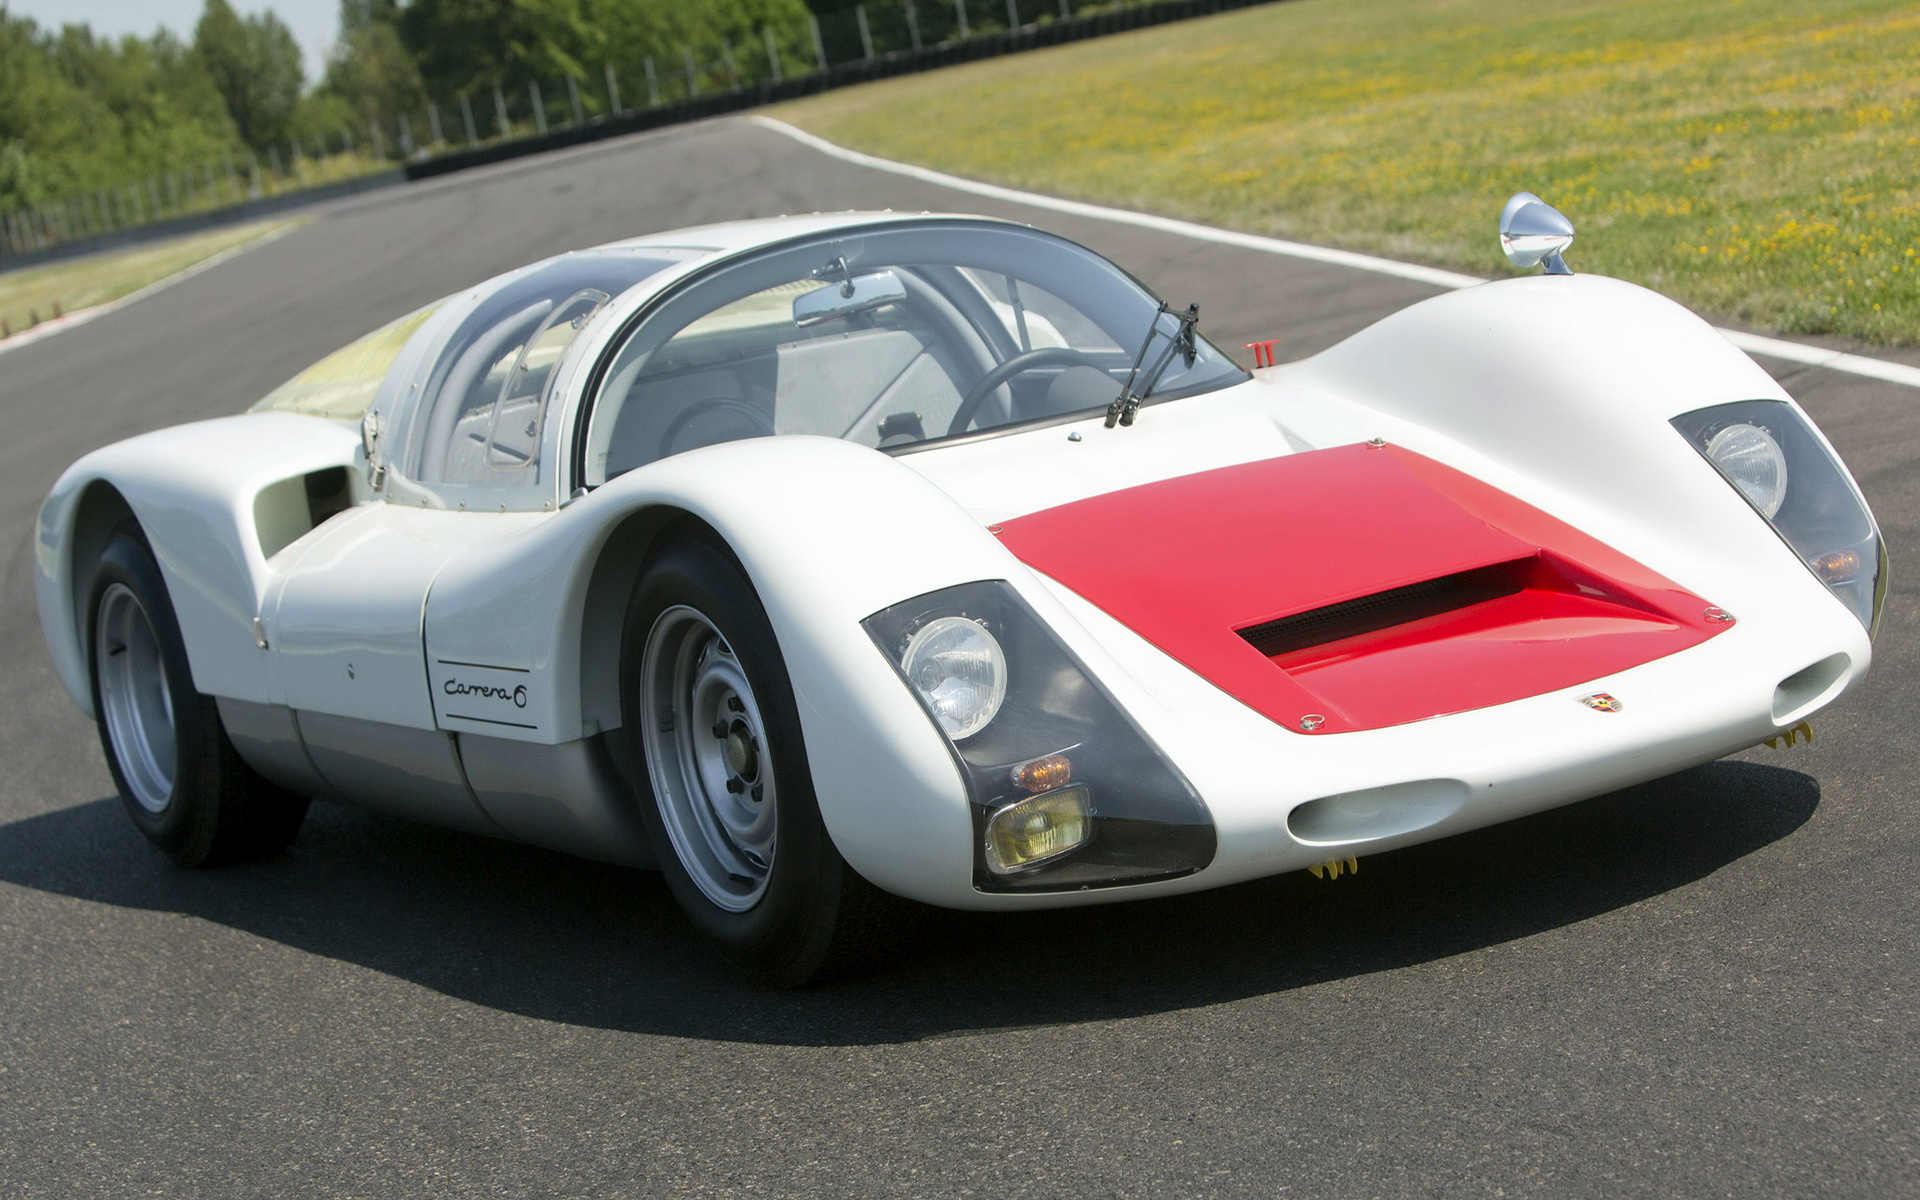 Porsche 906 Carrera 6 007 1966 Wallpapers And Hd